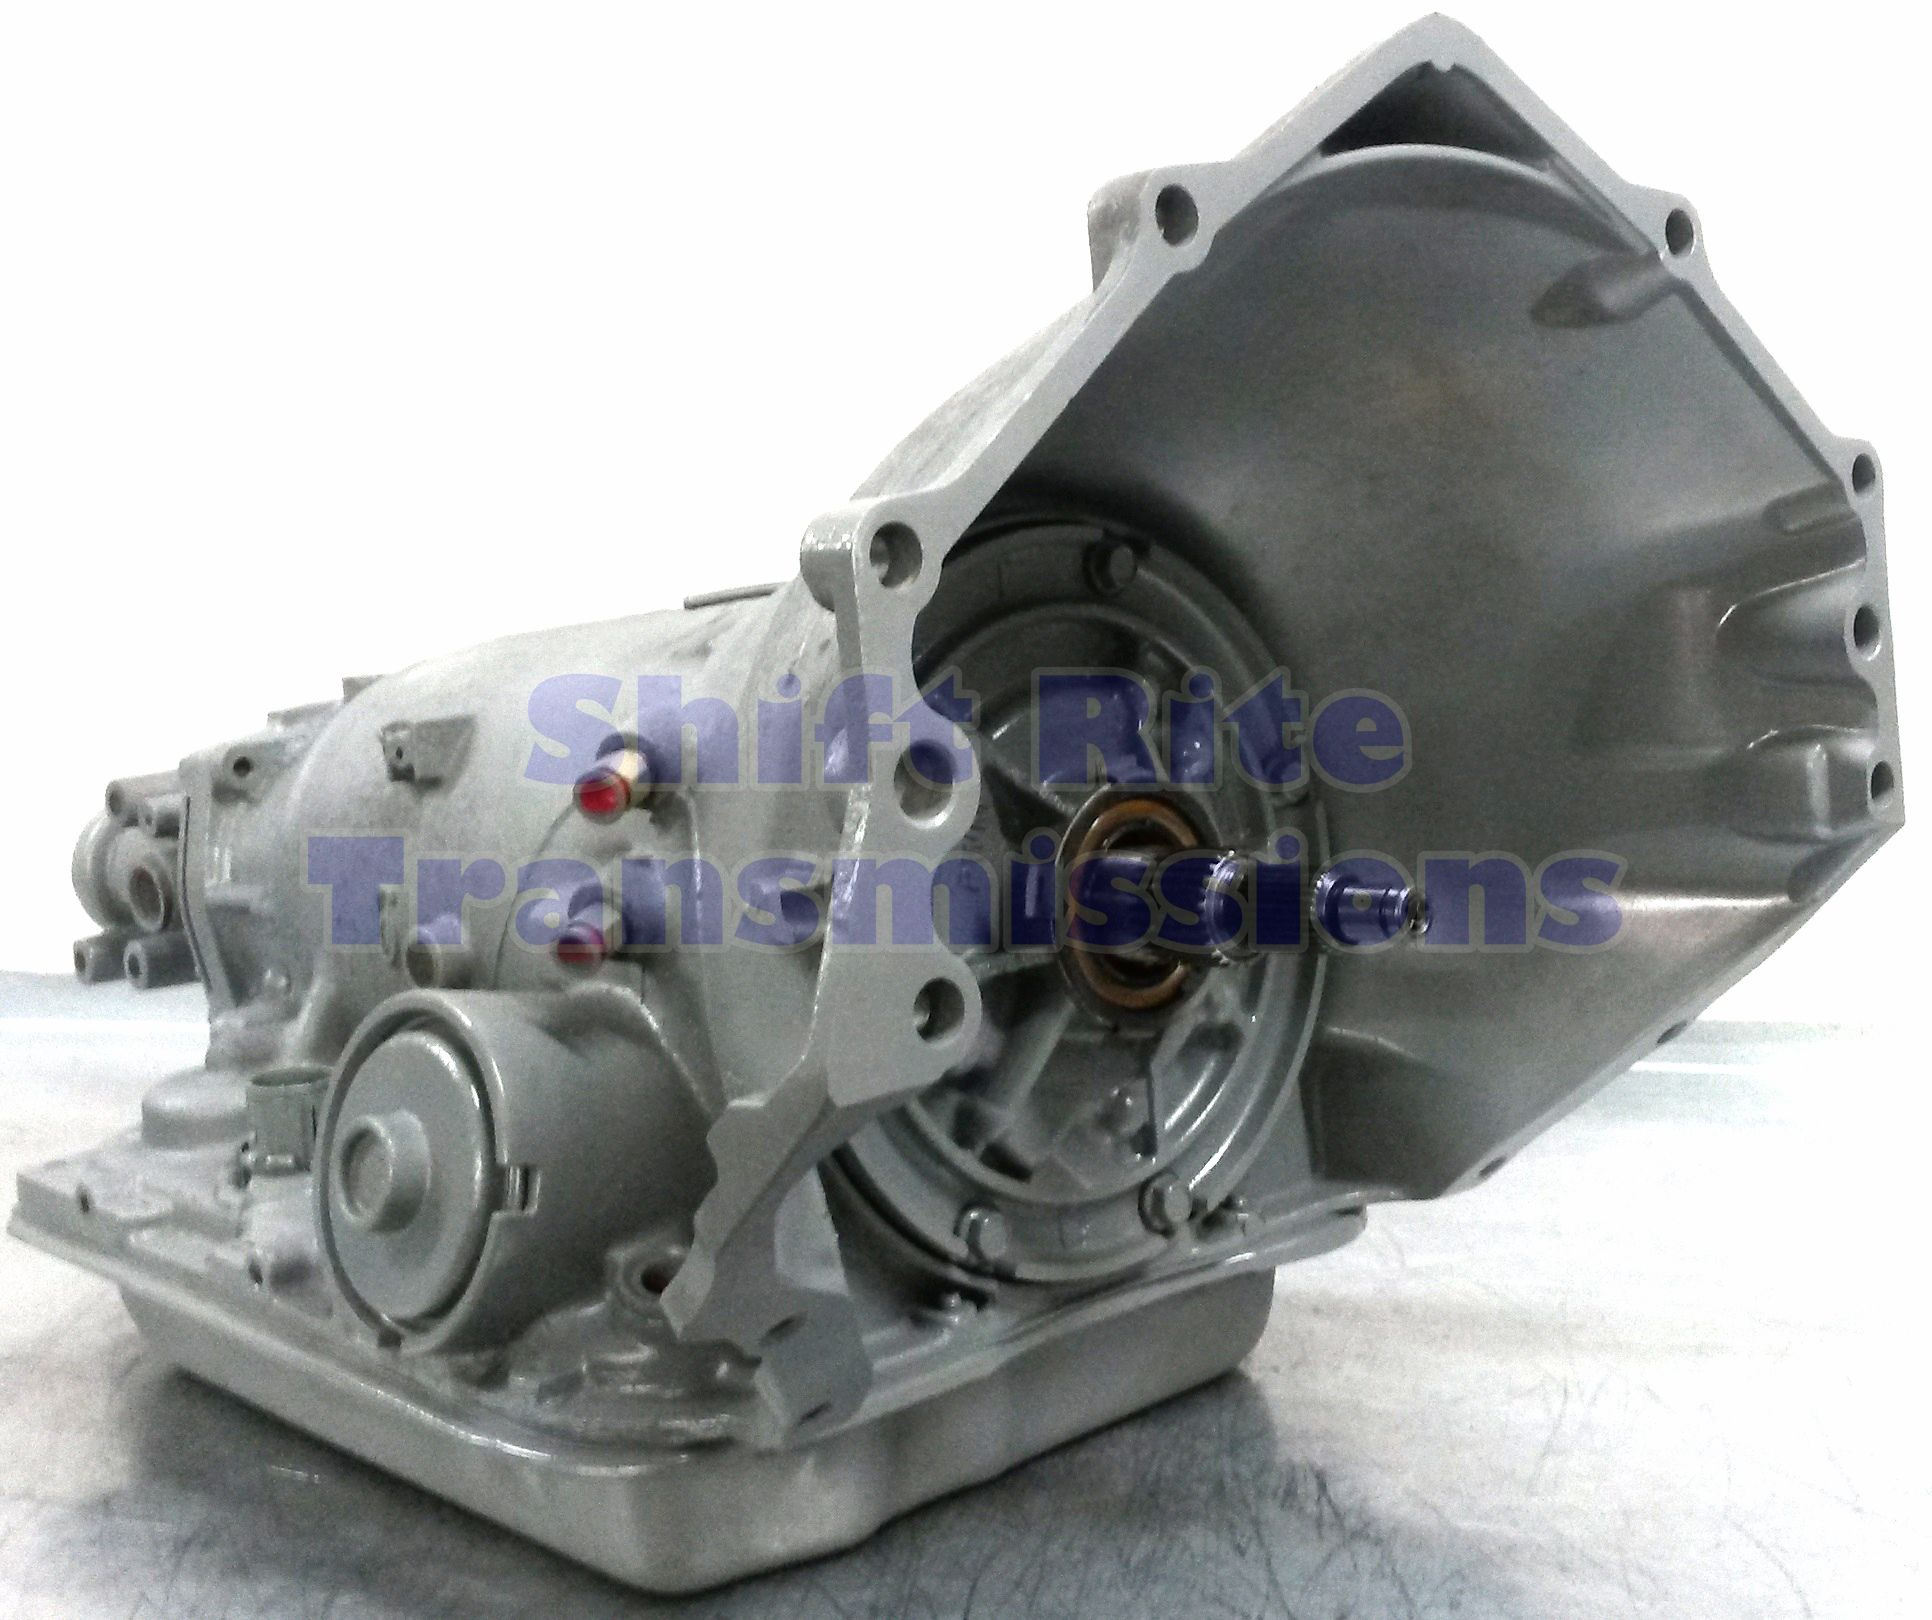 4L60E Transmission For Sale >> 4l60e 1995 2wd Transmission 5 7l 5 0l 4 3l